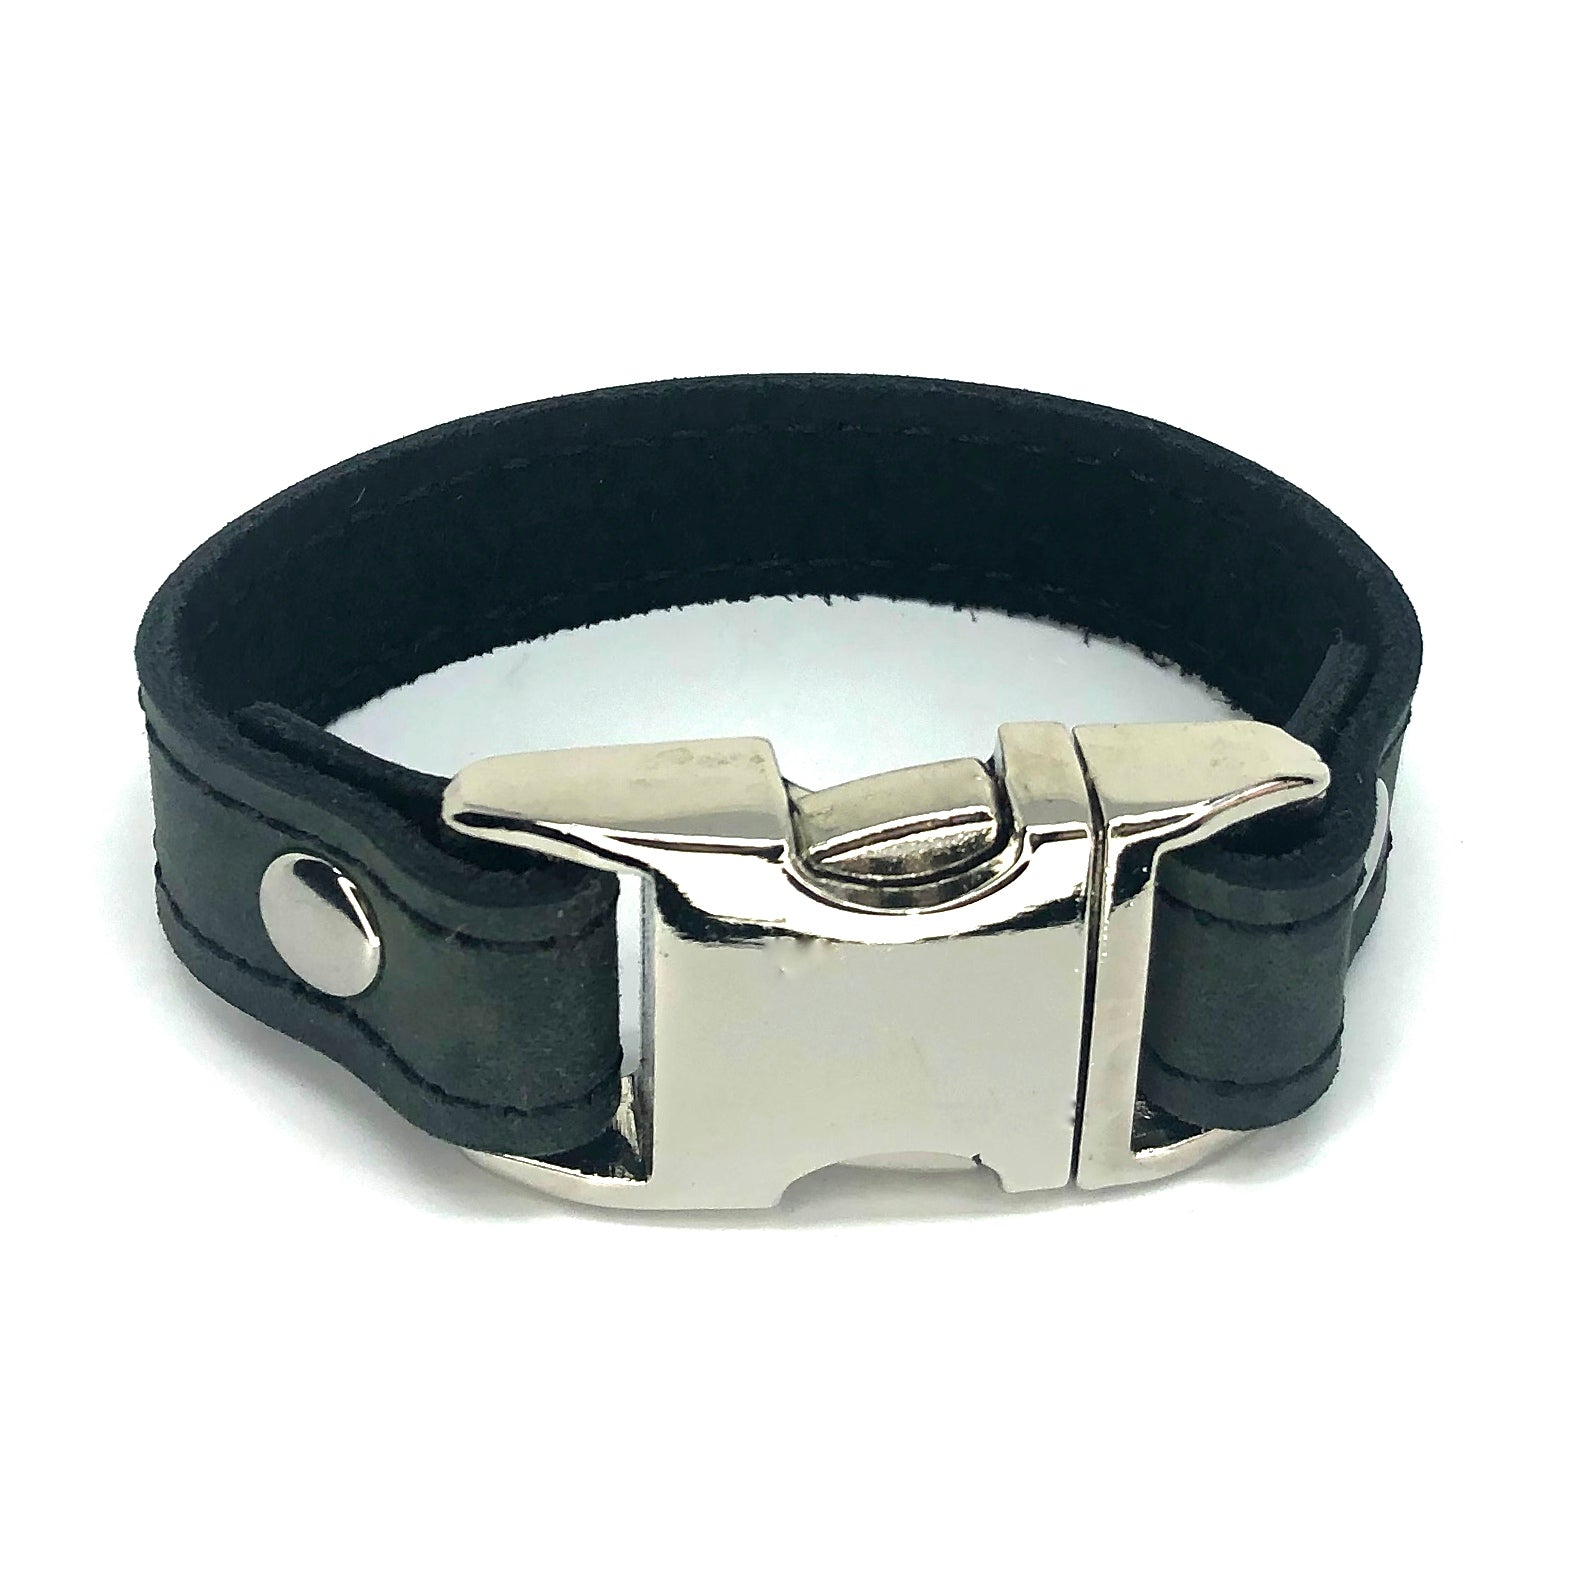 Distressed leather bracelet with side squeeze aluminum buckle by NYET Jewelry